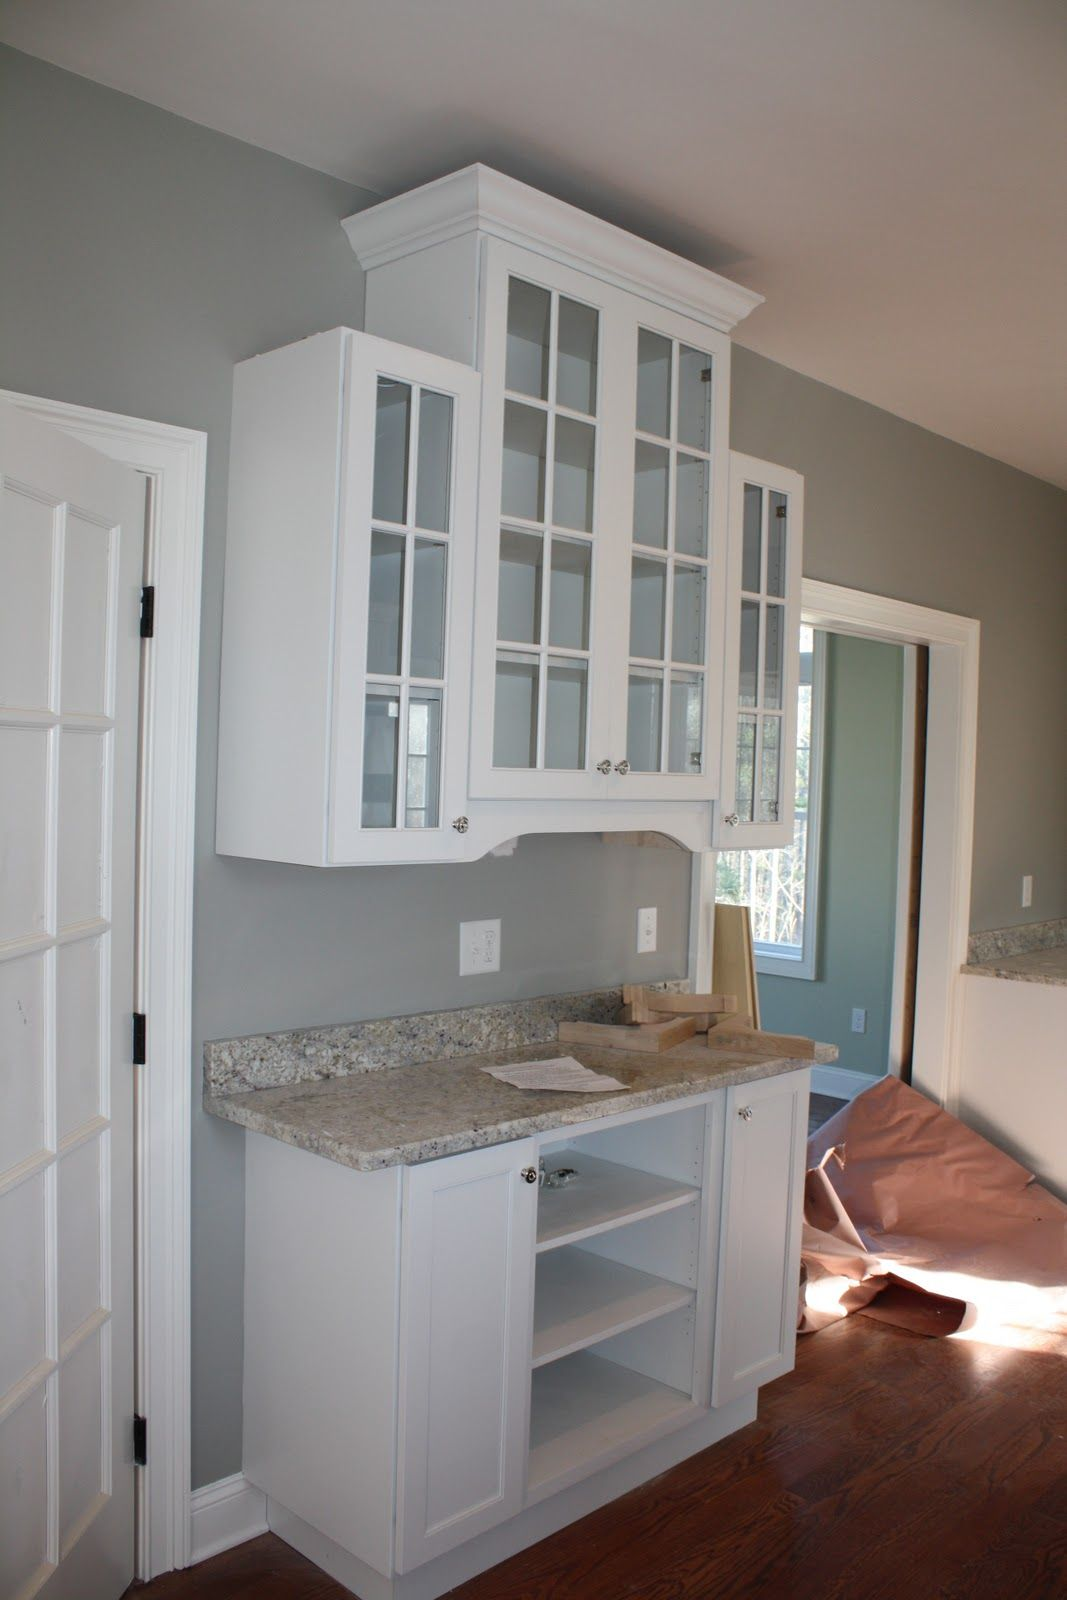 Best Kitchen Gallery: Sea Haze Paint Color Dining Room Bar Ideas For The Home of Benjamin Moore Sea Haze Kitchen Cabinets on rachelxblog.com